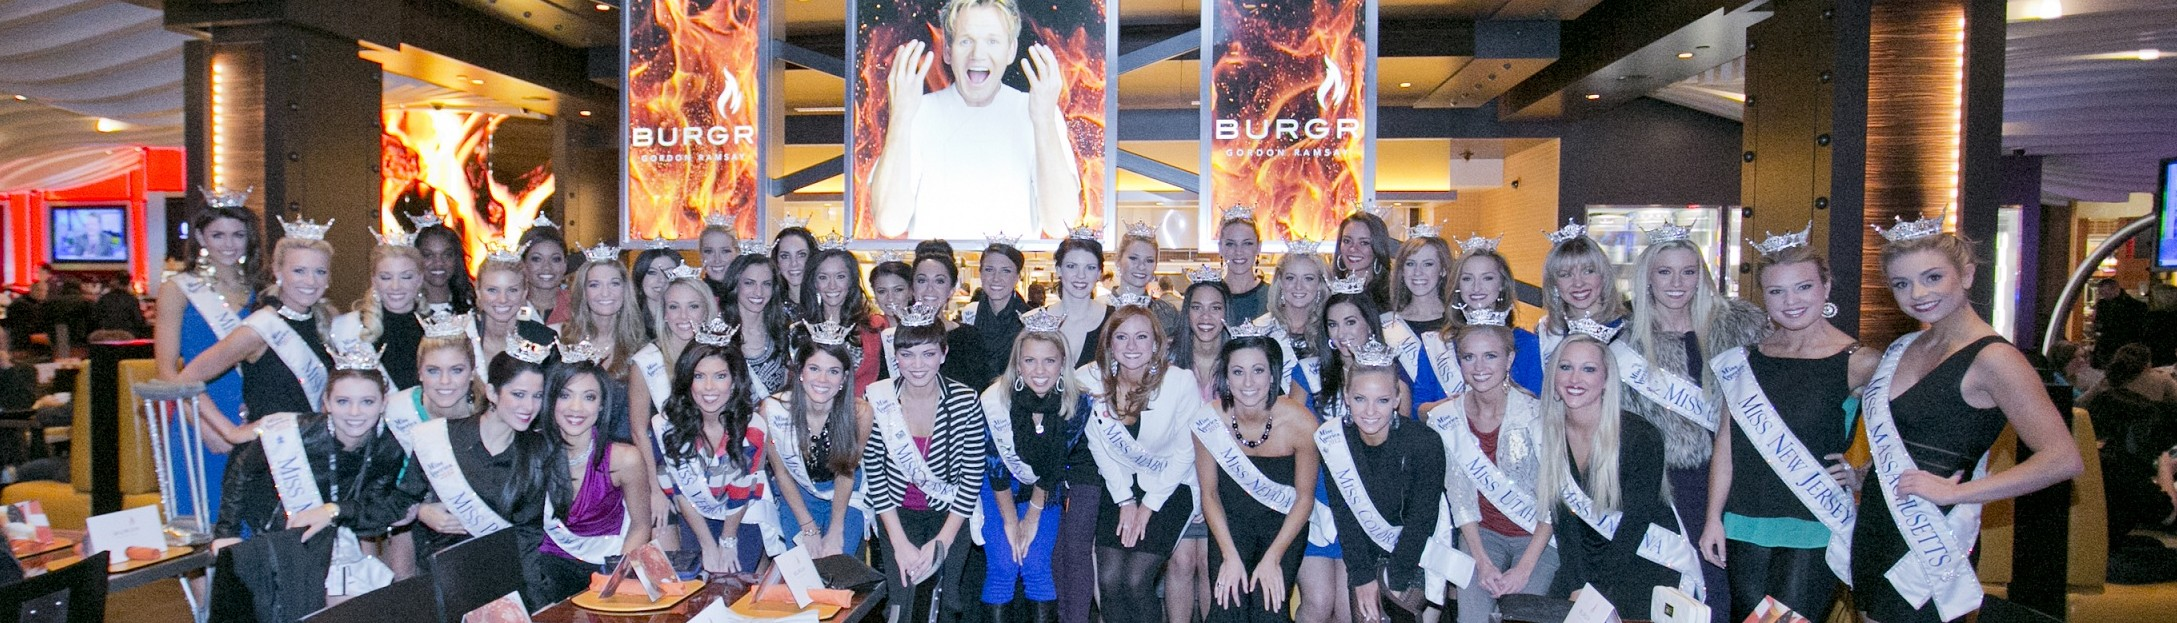 3 contestants of the 2013 Miss America Pageant dining at Gordon Ramsay BurGR at Planet Hollywood Resort & Casino on Friday, Jan. 11, 2013.